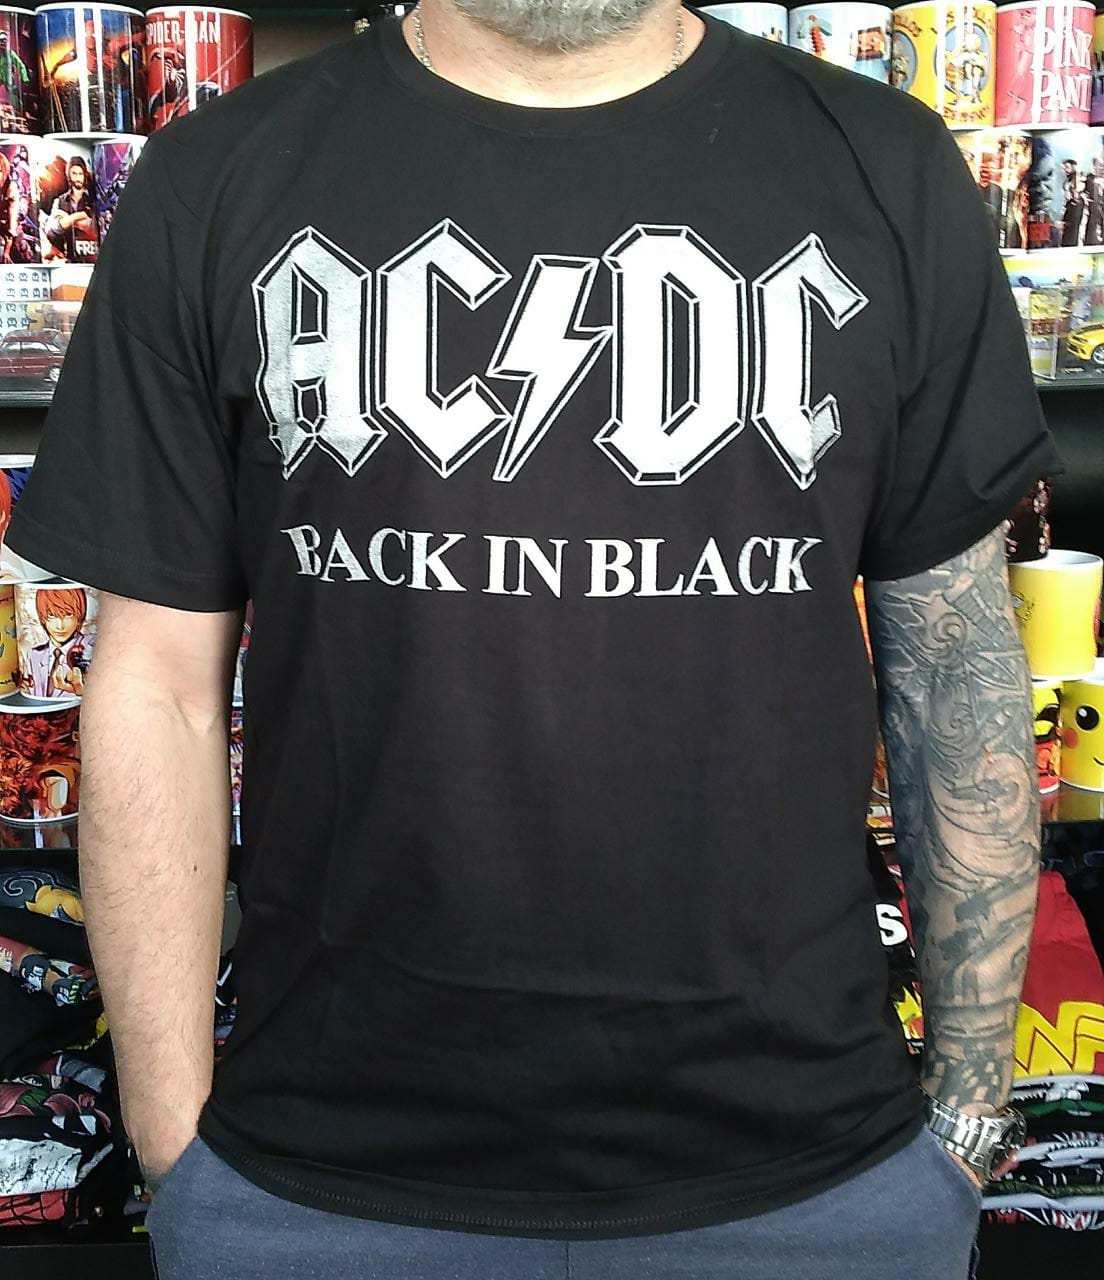 CAMISETA ACDC BACK IN BLACK BOMBER